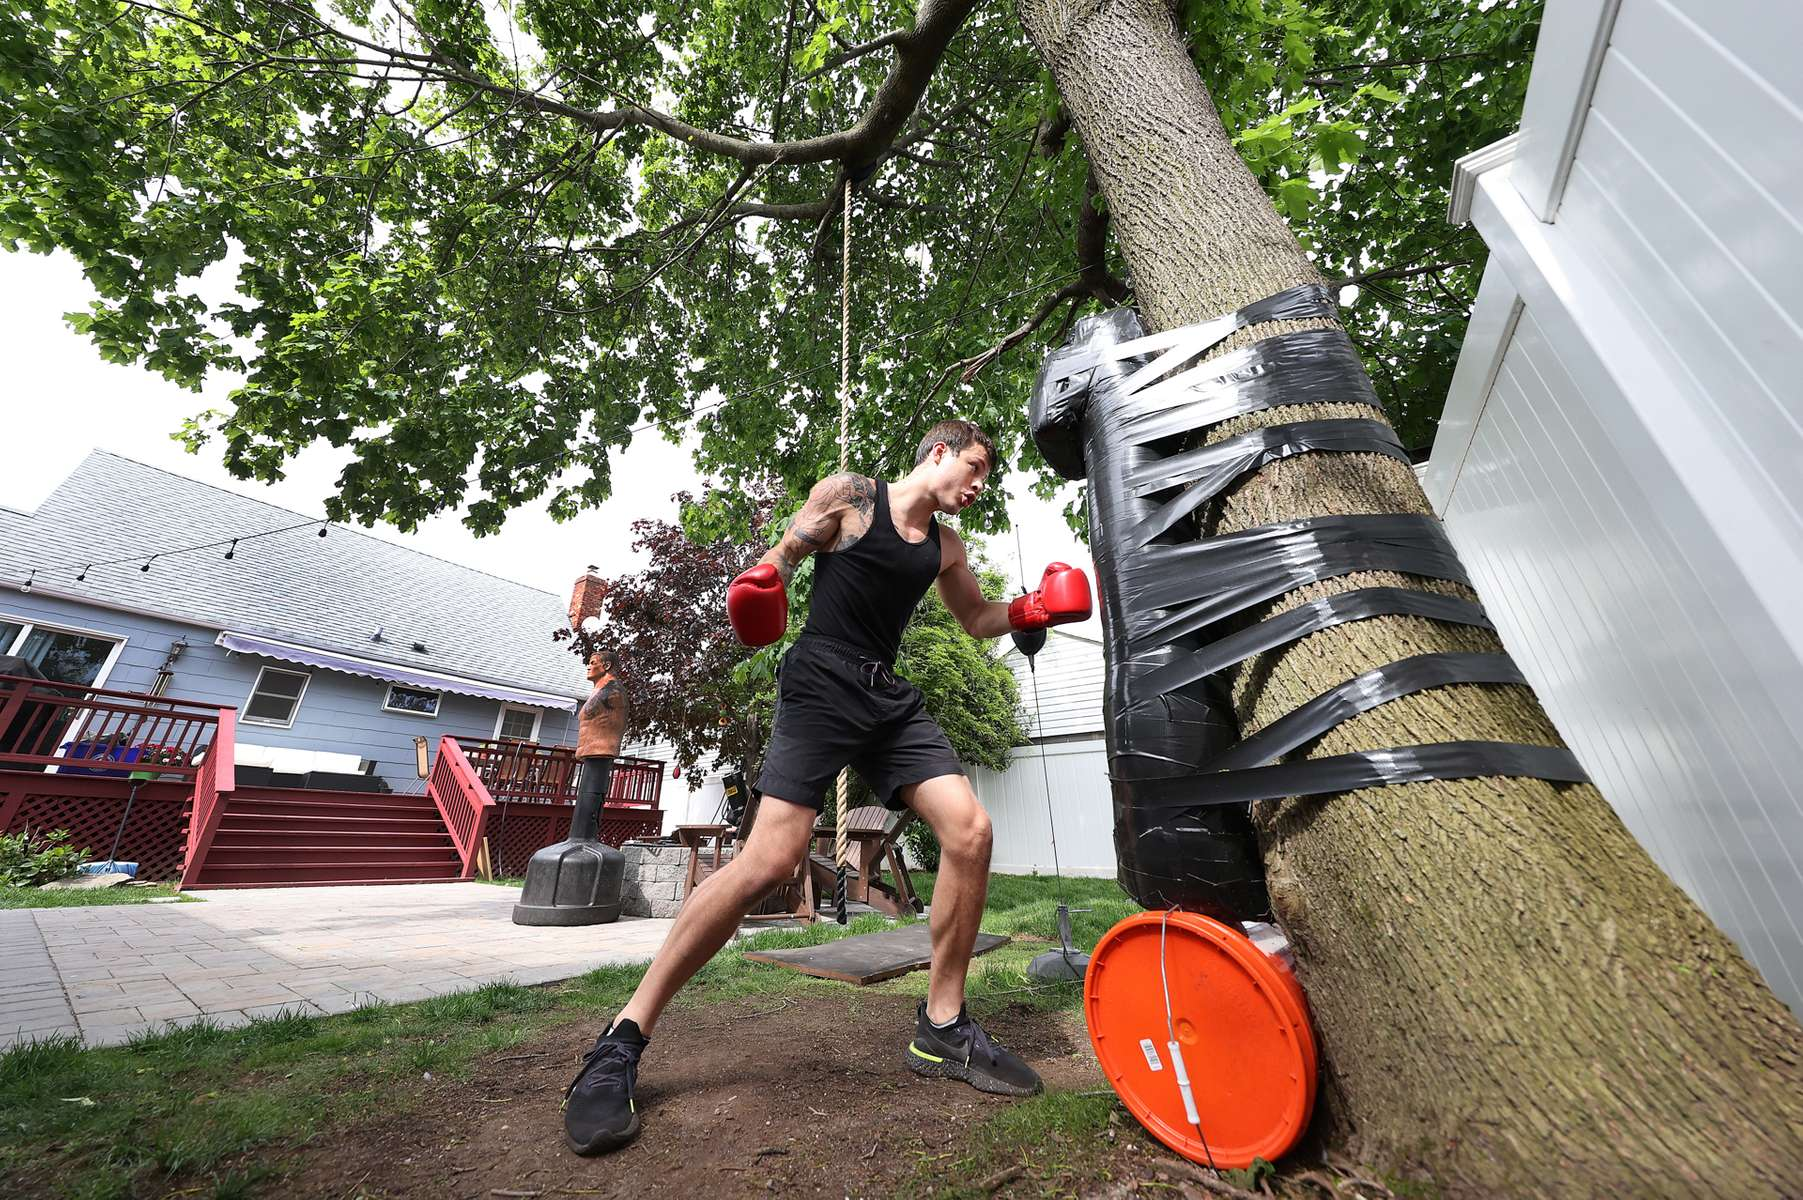 Zach Blumberg punches a homemade heavy bag he attached with duct tape to a tree in his backyard on May 18, 2020 in Oceanside, New York.  Zach is an Amateur boxer who fought in the New York City Golden Gloves. He was training to compete in this year's Golden Gloves tournament but it has been cancelled due to the coronavirus pandemic.  The Gym he fights for is called the Freeport Boxing Club and has been closed by New York Governor Andrew Cuomo since March 16th due to the coronavirus COVID-19 pandemic.  Until the gyms are deemed safe to open he will continue to stay fit by training at home with the hope that he can box again later this year.